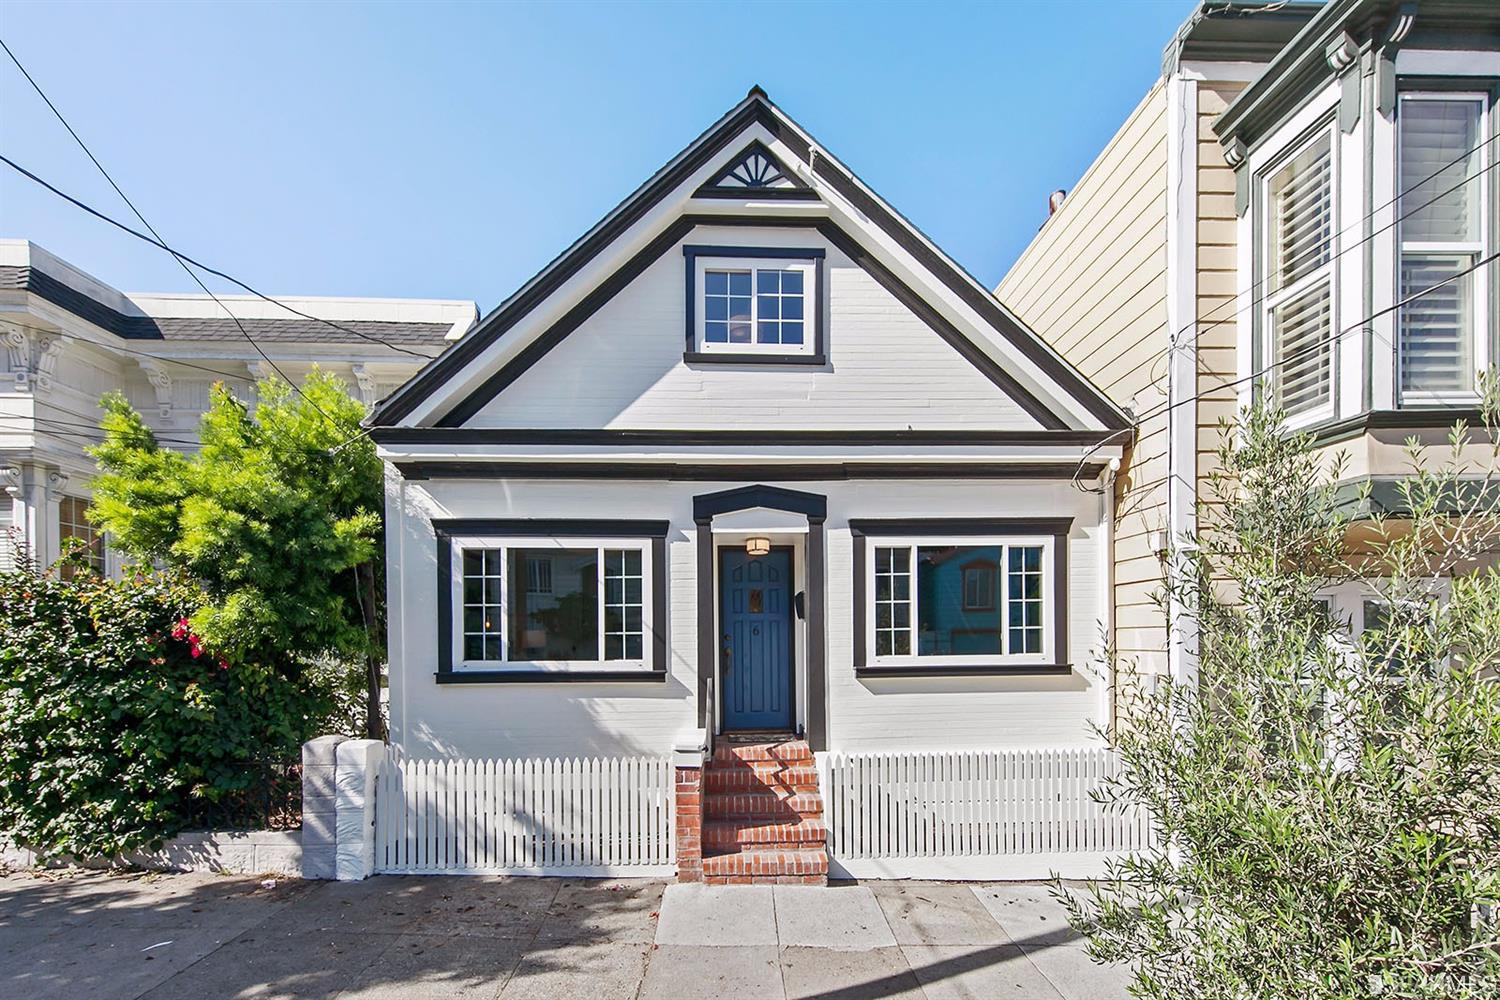 217 Single Family Homes For Sale In San Francisco … Right Now … That's It